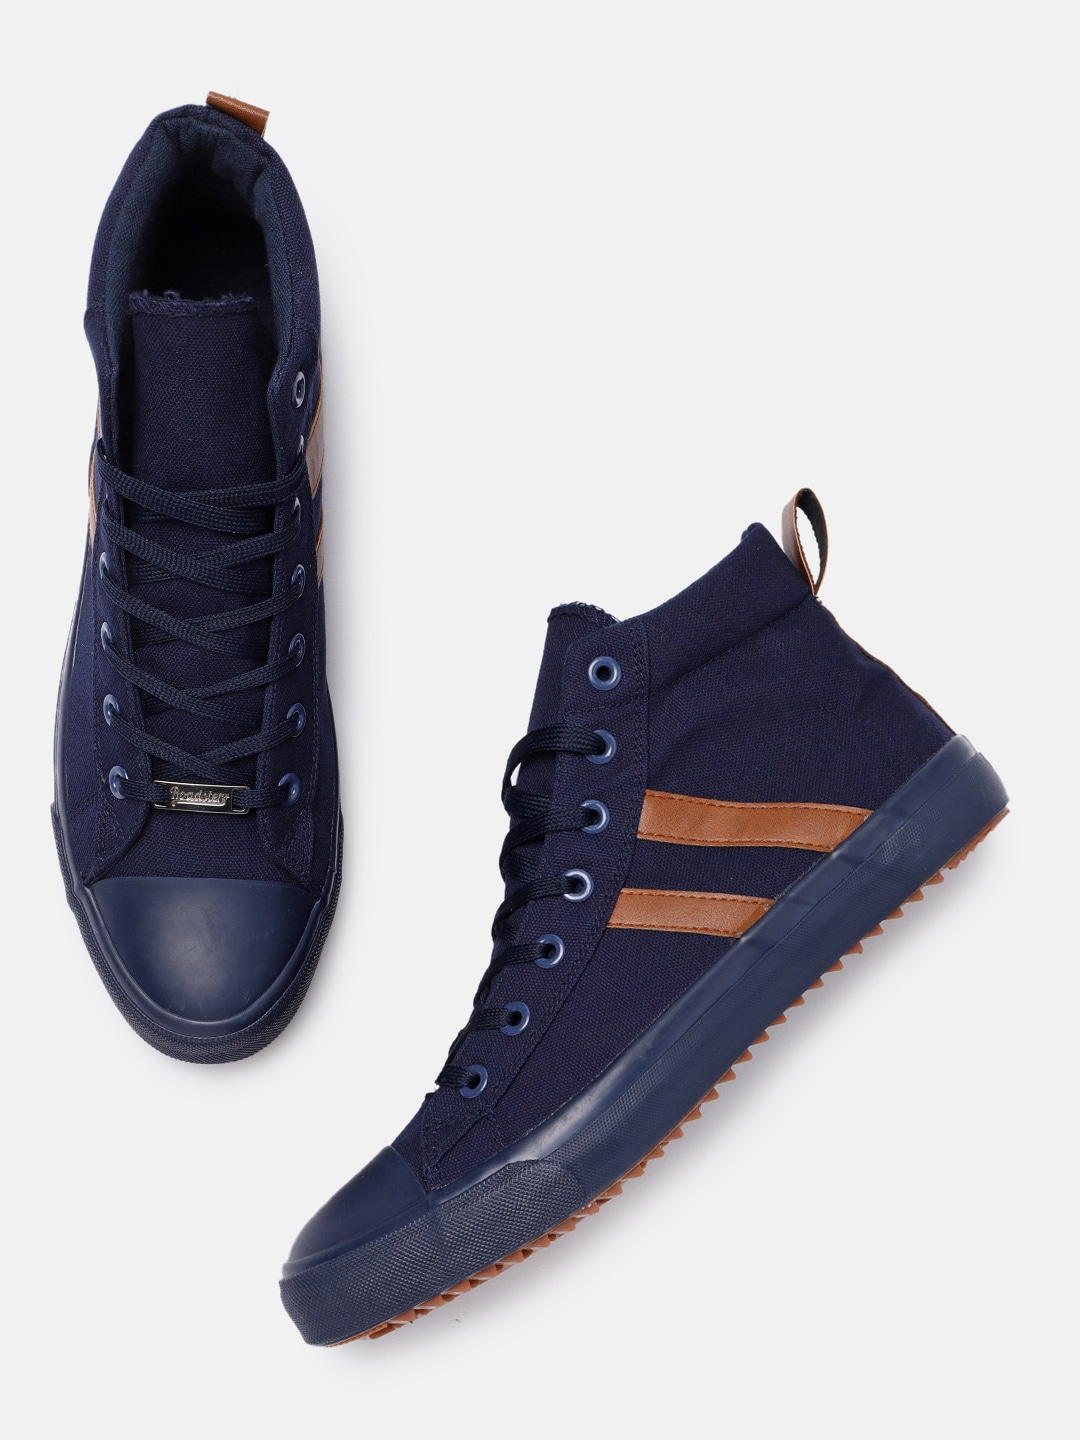 Navy Blue Solid Mid-Top Sneakers